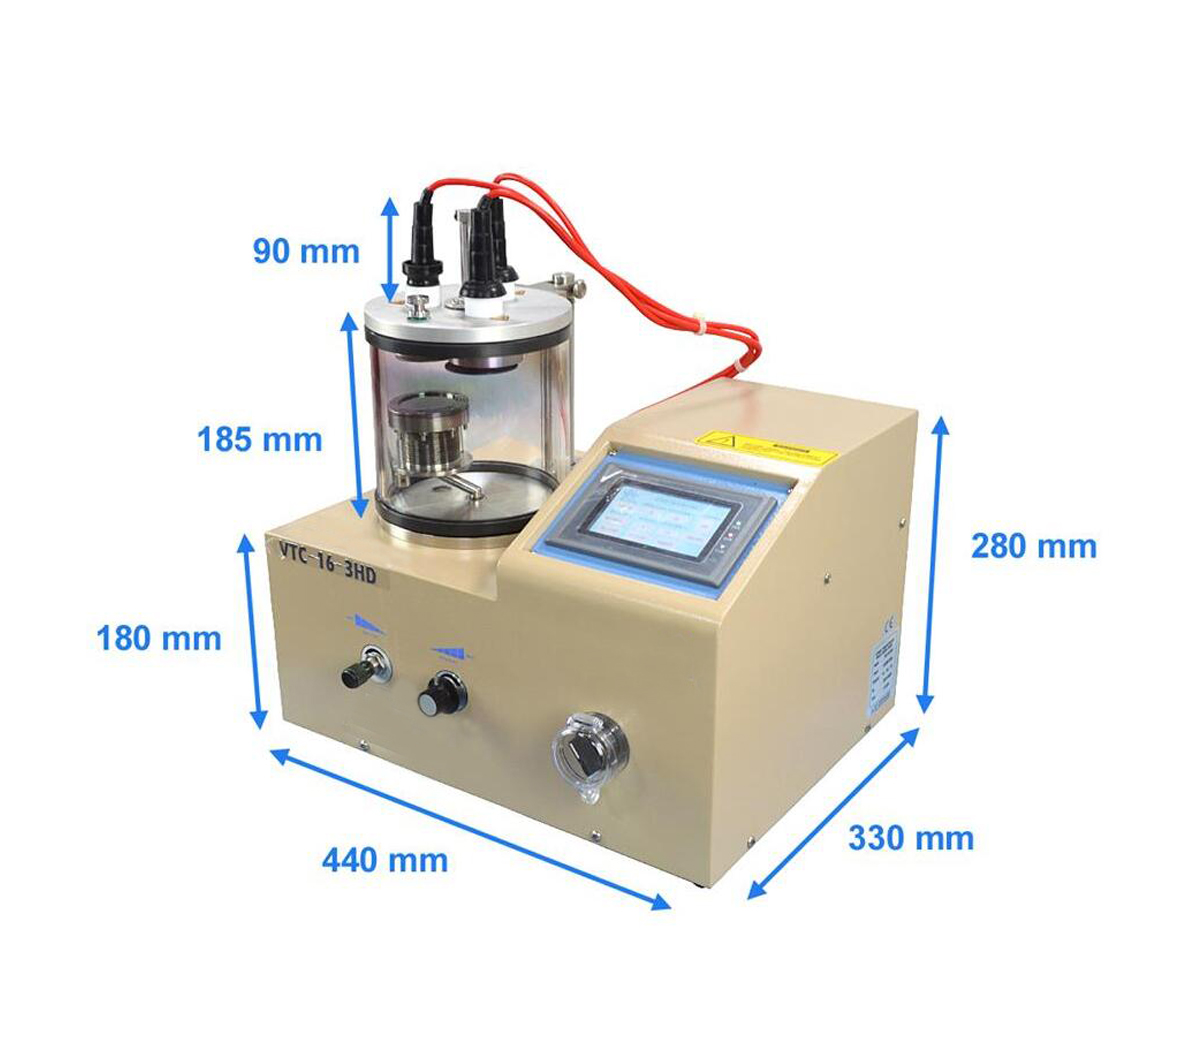 3 Rotary Target Plasma Sputtering Coater with Substrate Heater (500 ℃) Including 3 Targets VTC-16-3HD